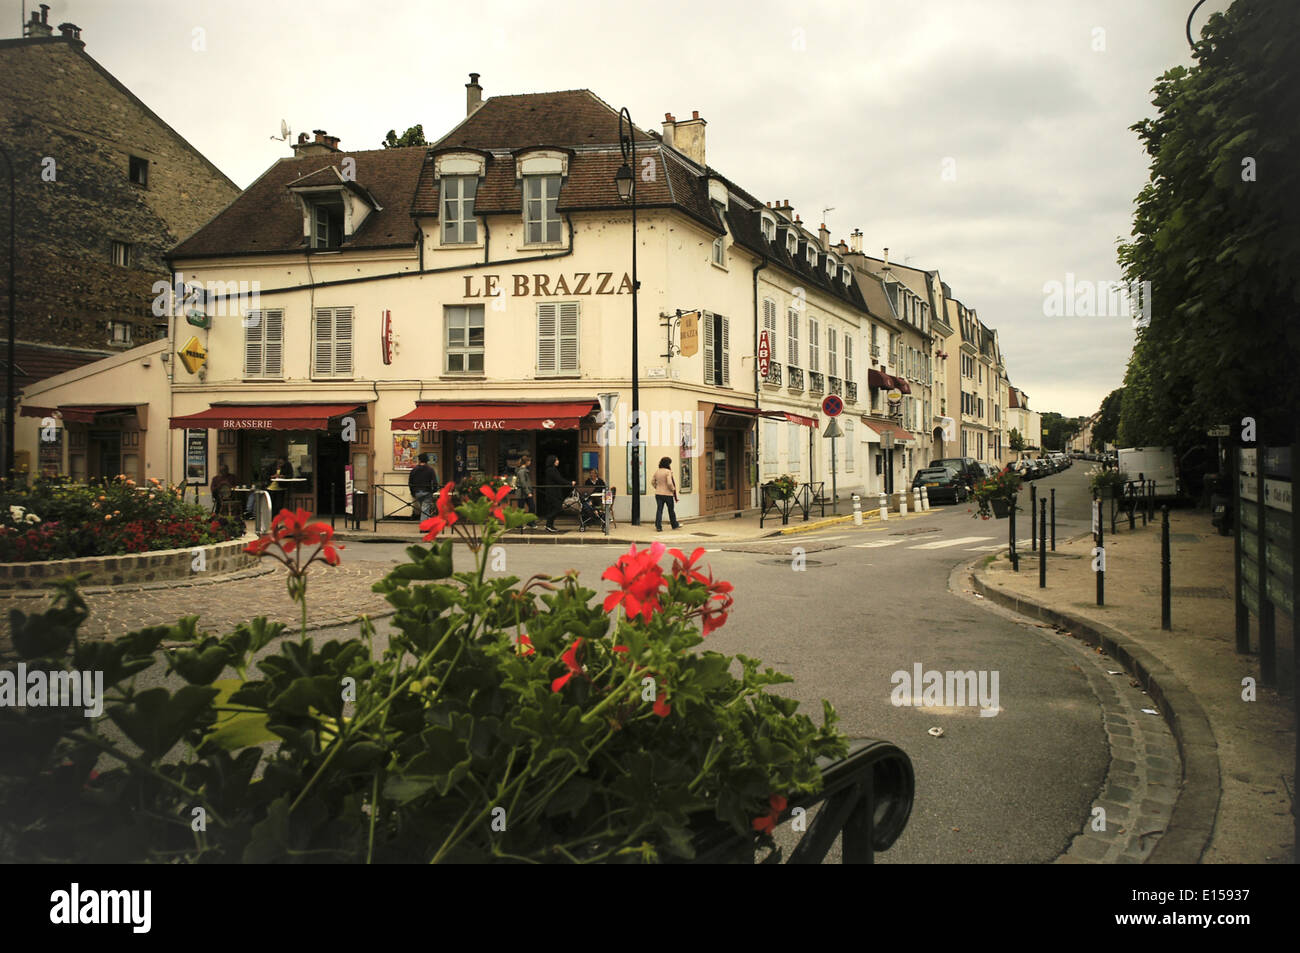 Sisley paintings stock photos sisley paintings stock images alamy - Le soleil levant port marly ...